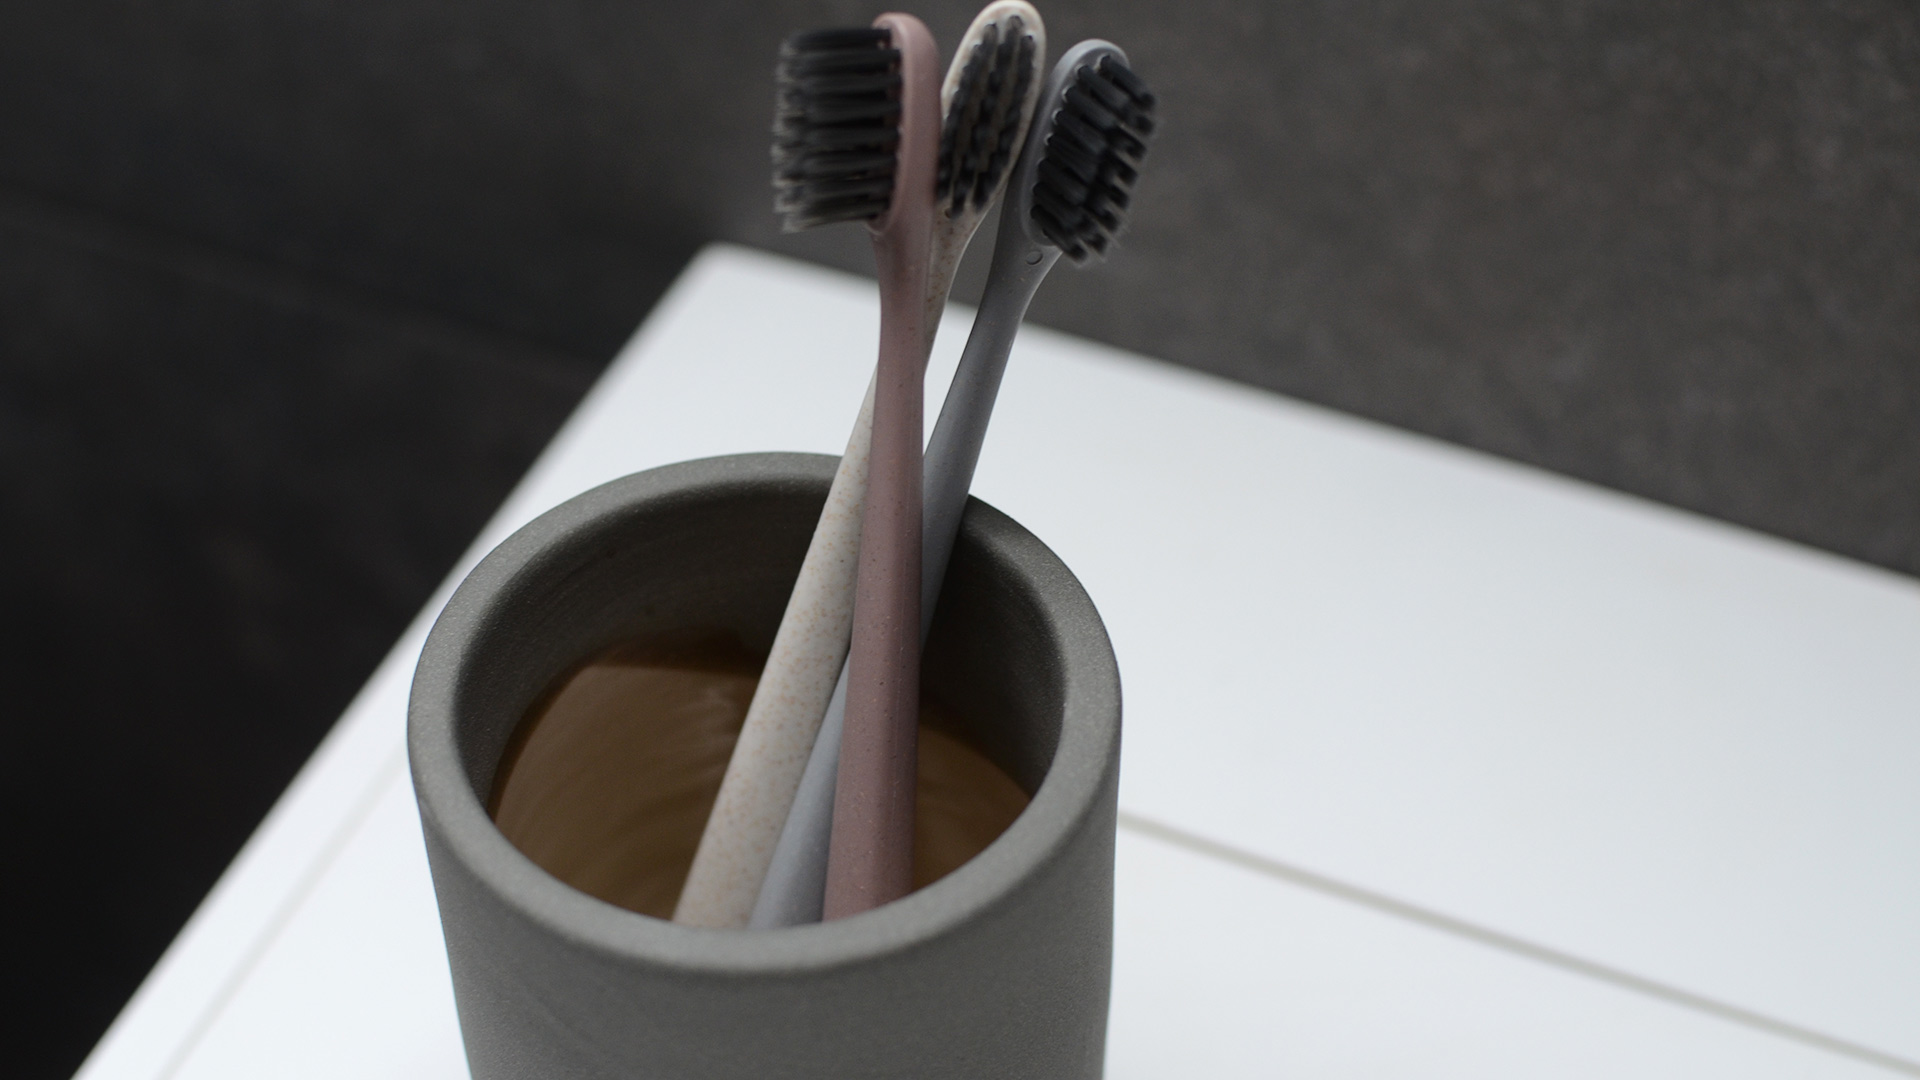 Toothbrush Set with Holder